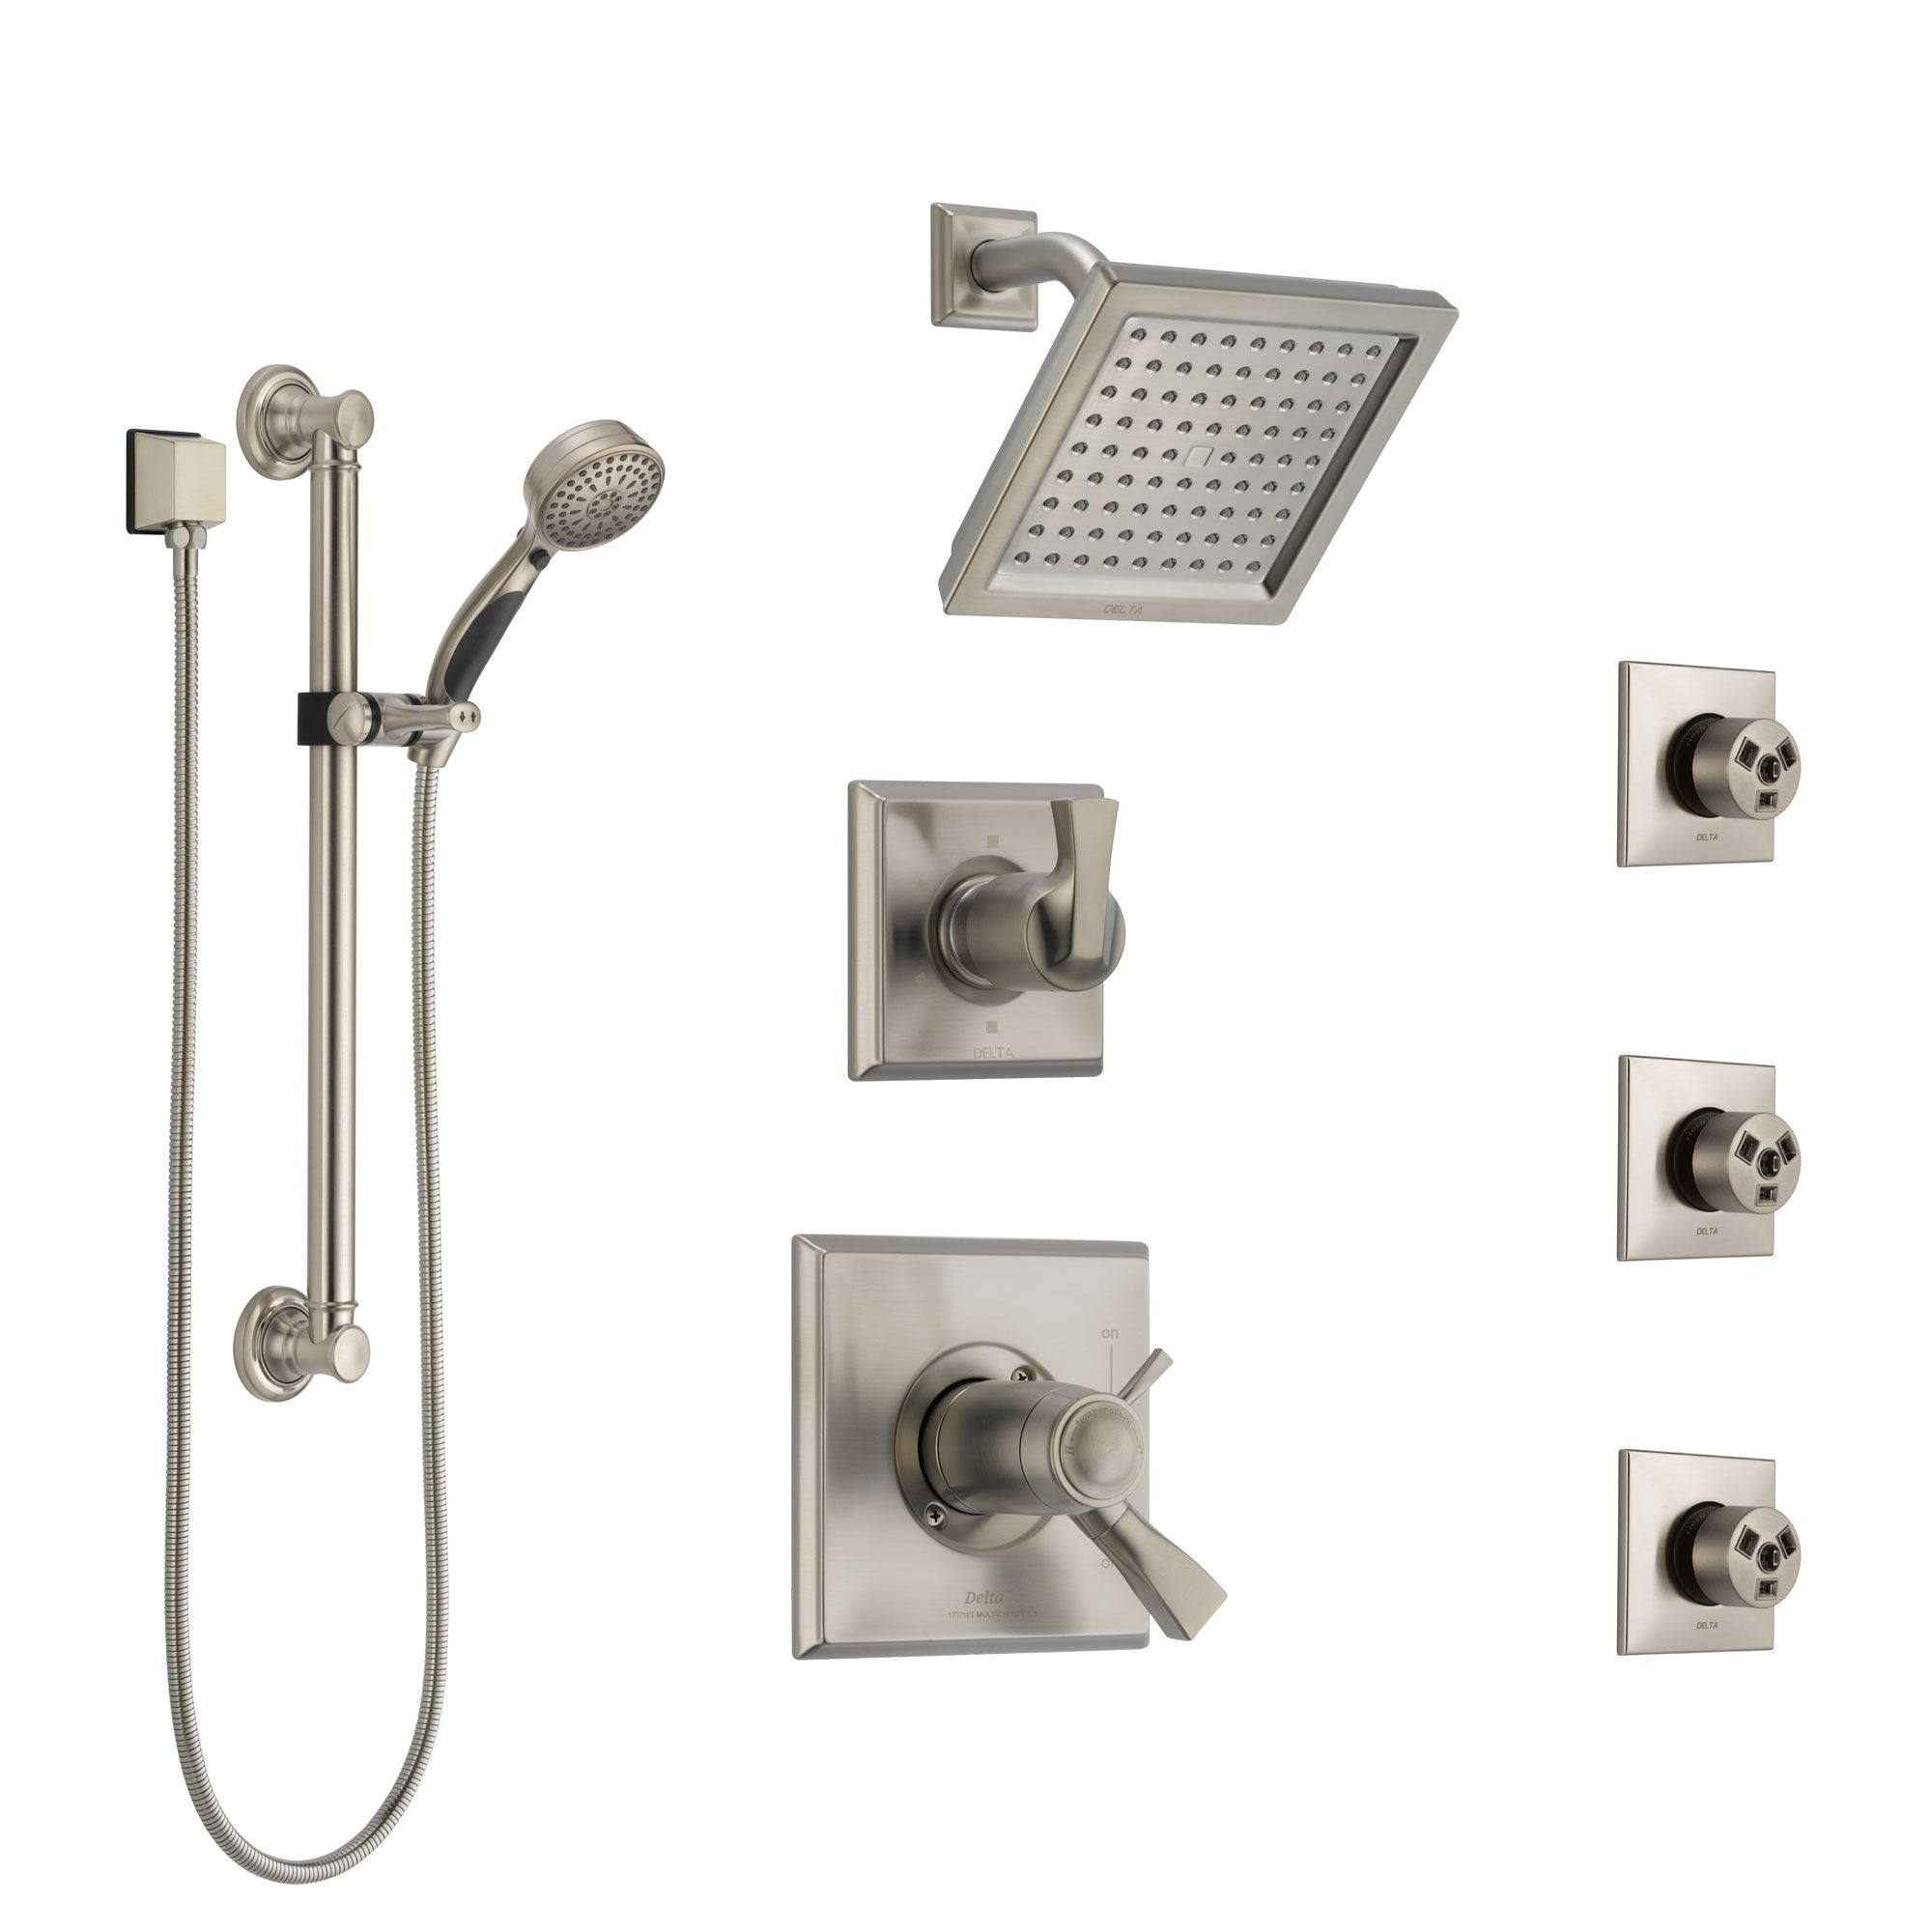 Delta Dryden Dual Thermostatic Control Stainless Steel Finish Shower System, Diverter, Showerhead, 3 Body Sprays, and Grab Bar Hand Spray SS17T2512SS1